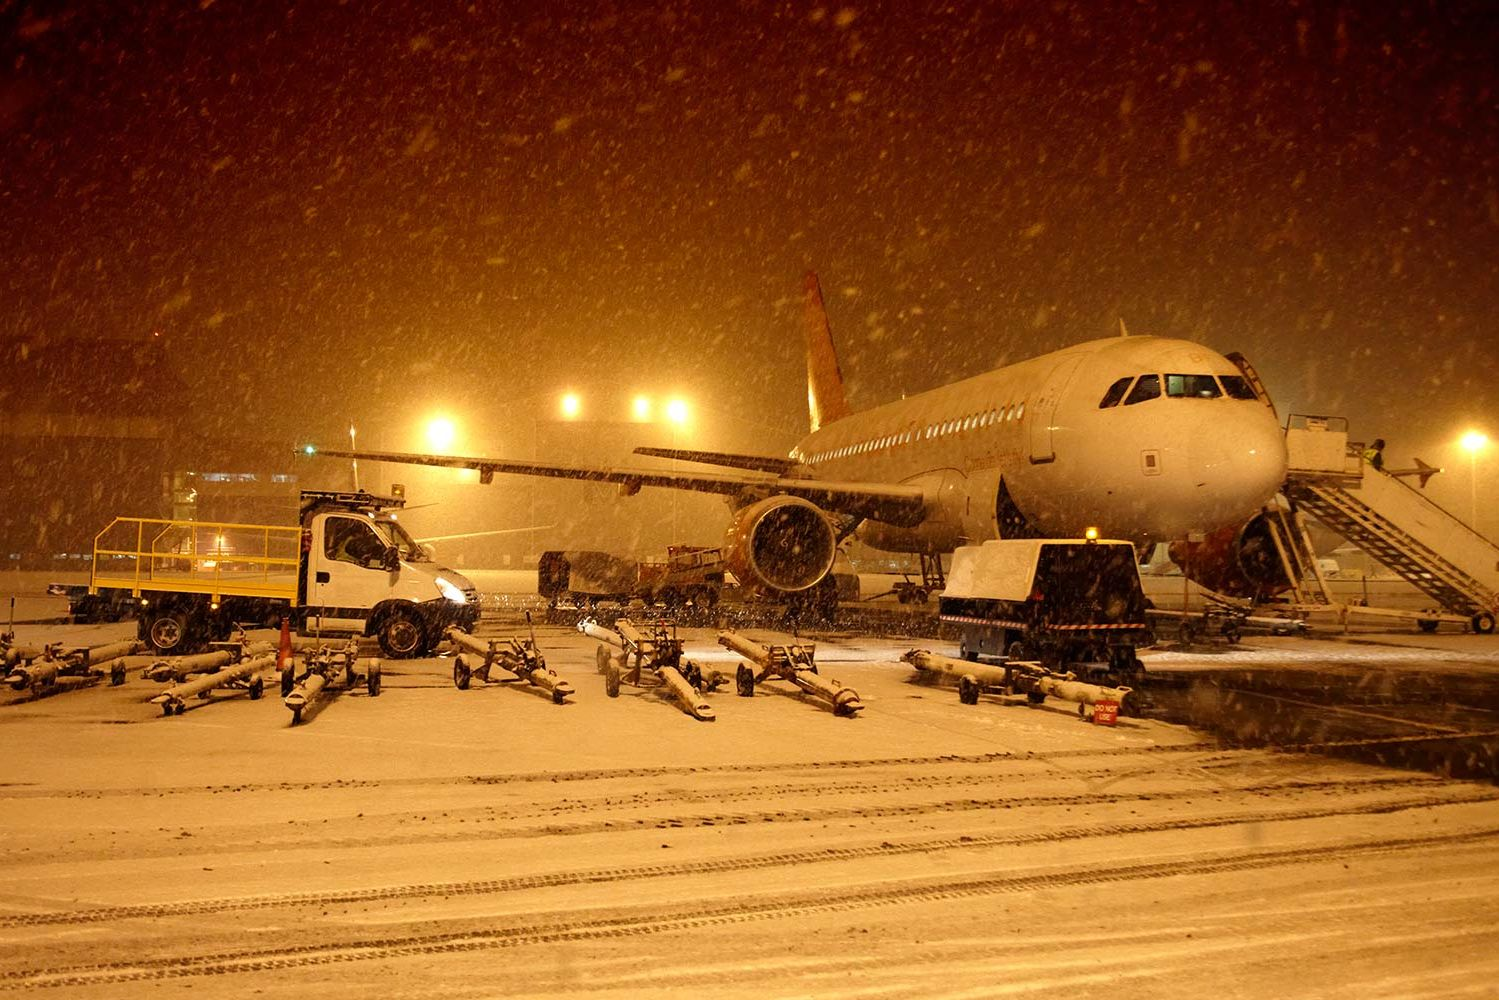 How Cold Does It Have to Be to Keep a Plane From Flying?